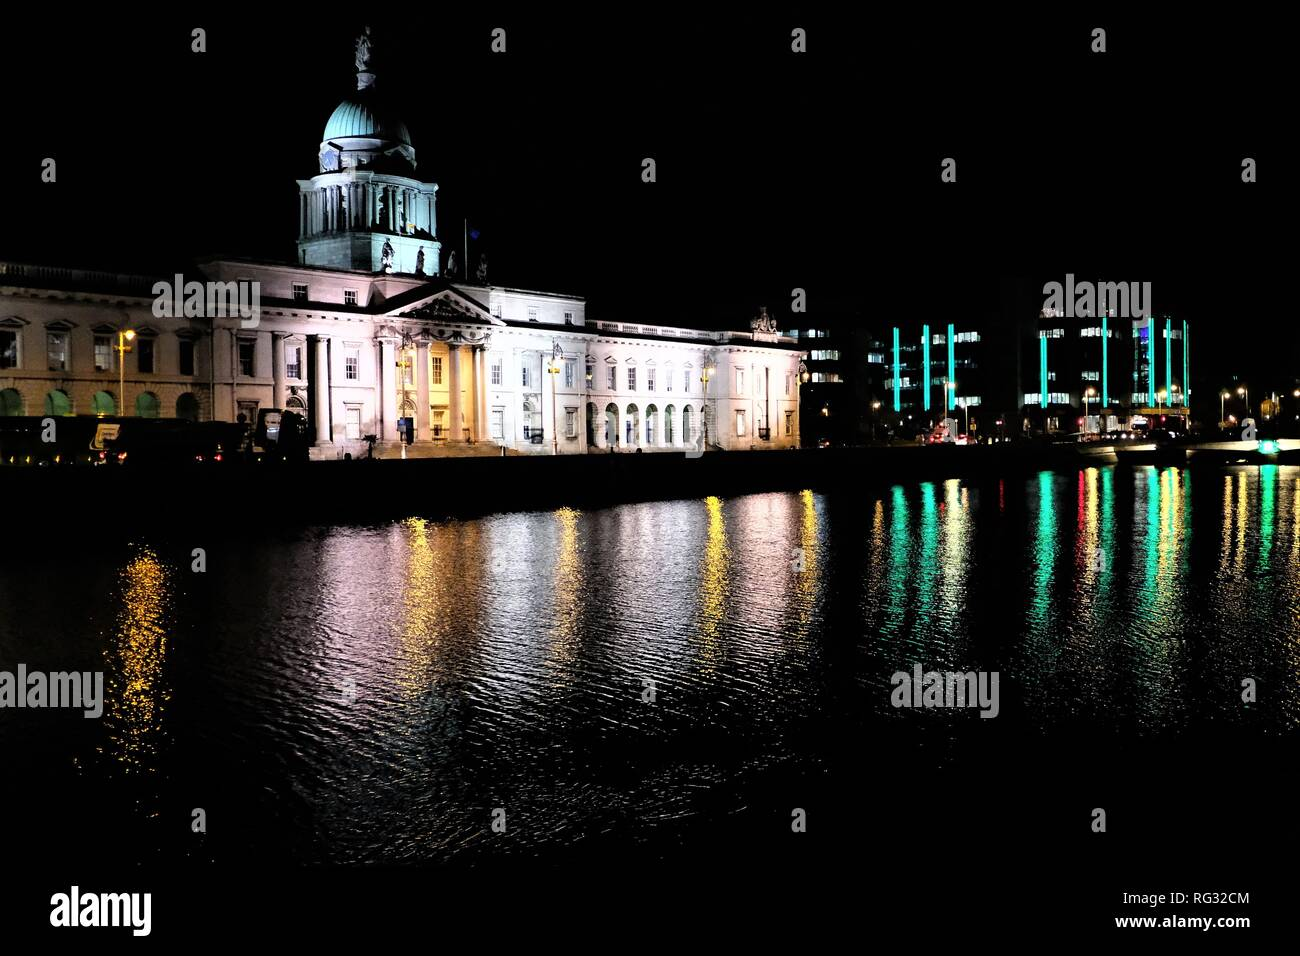 The Custom House is a neoclassical 18th century building in Dublin, Ireland which houses the Department of Housing, Planning and Local Government. - Stock Image